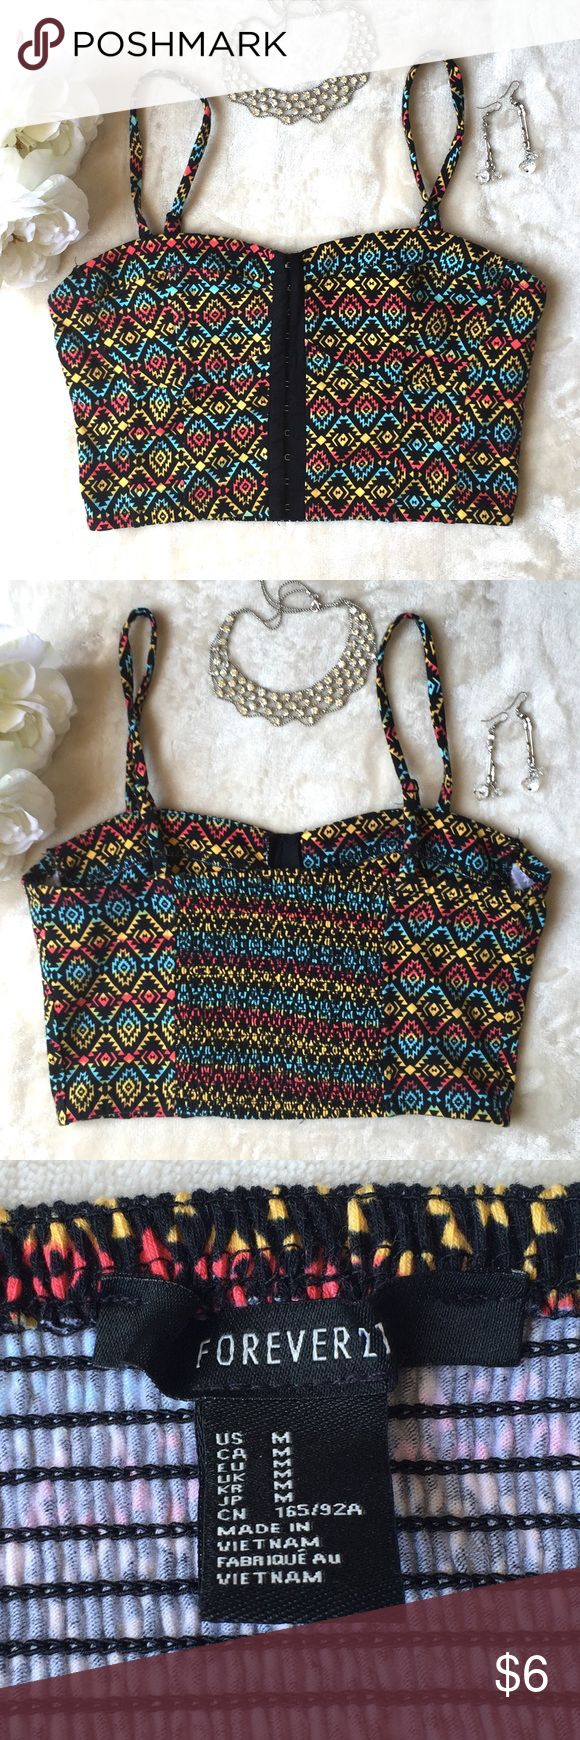 Forever 21 Aztec Print Bustier Crop Top Forever 21 Aztec print corset crop top with adjustable straps. Bustier hook front closure. Stretchy gathering in the back. In excellent used condition. Size medium. This is quite short and close to bandeau coverage. Forever 21 Tops Crop Tops